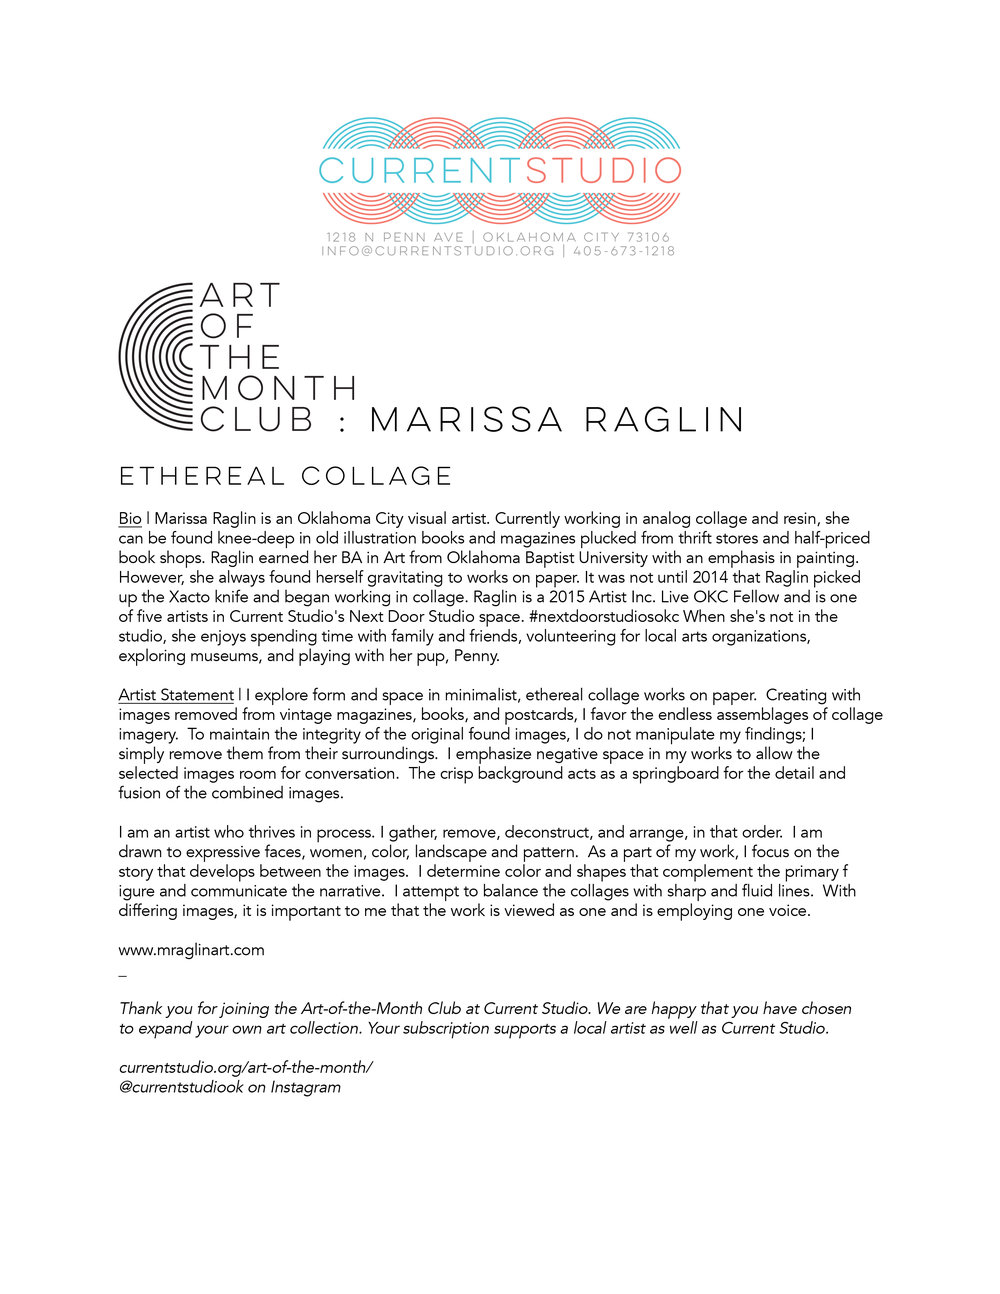 art of the month artist sheet - marissa raglin.jpg